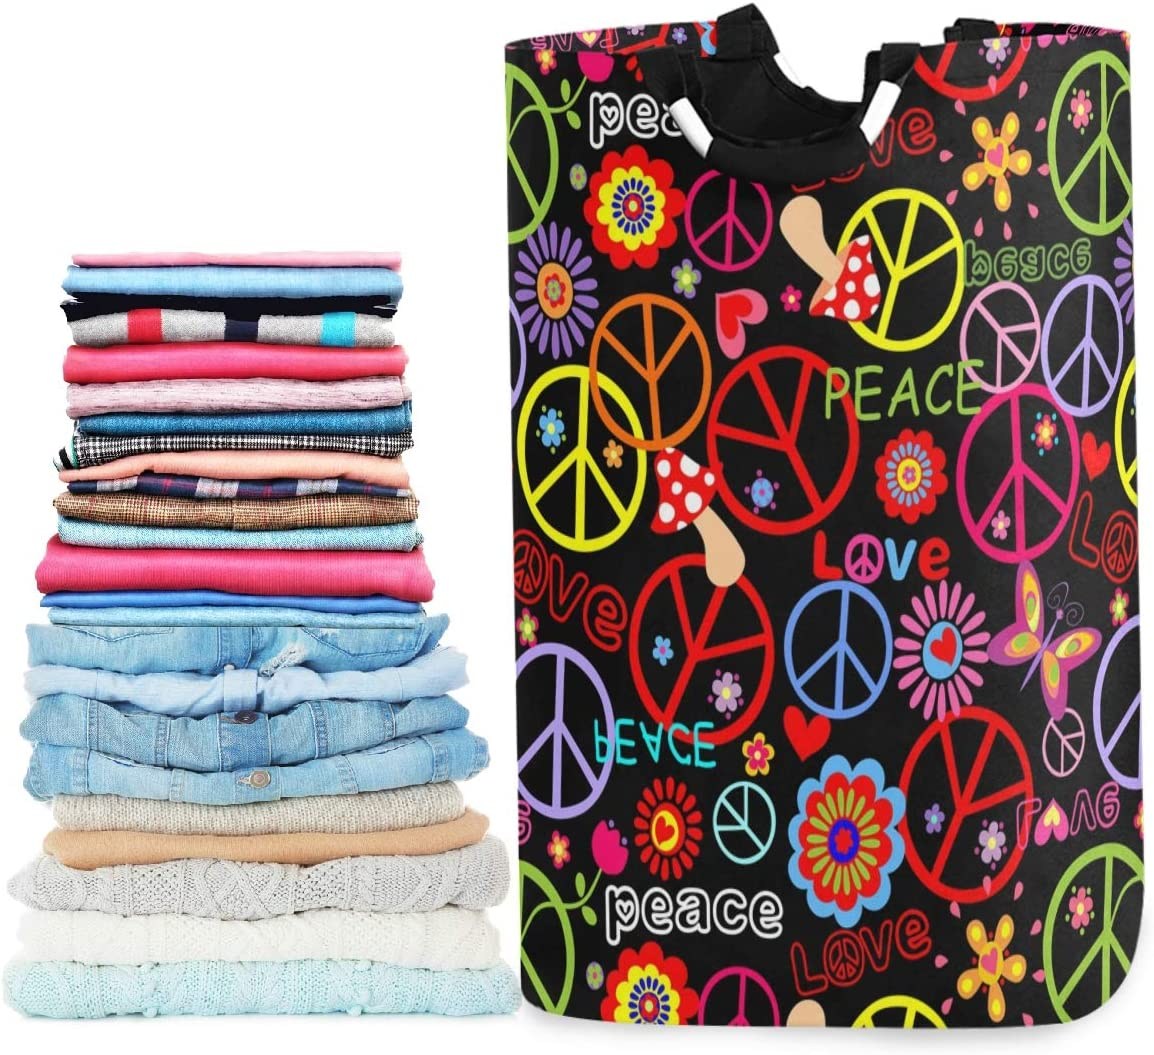 visesunny Collapsible Laundry Basket Hippie Peace Symbol Mushroom and Abstract Flower Large Laundry Hamper Oxford Fabric Dirty Clothes Toy Organizer with Handle for Bathroom Kids Room Dorm